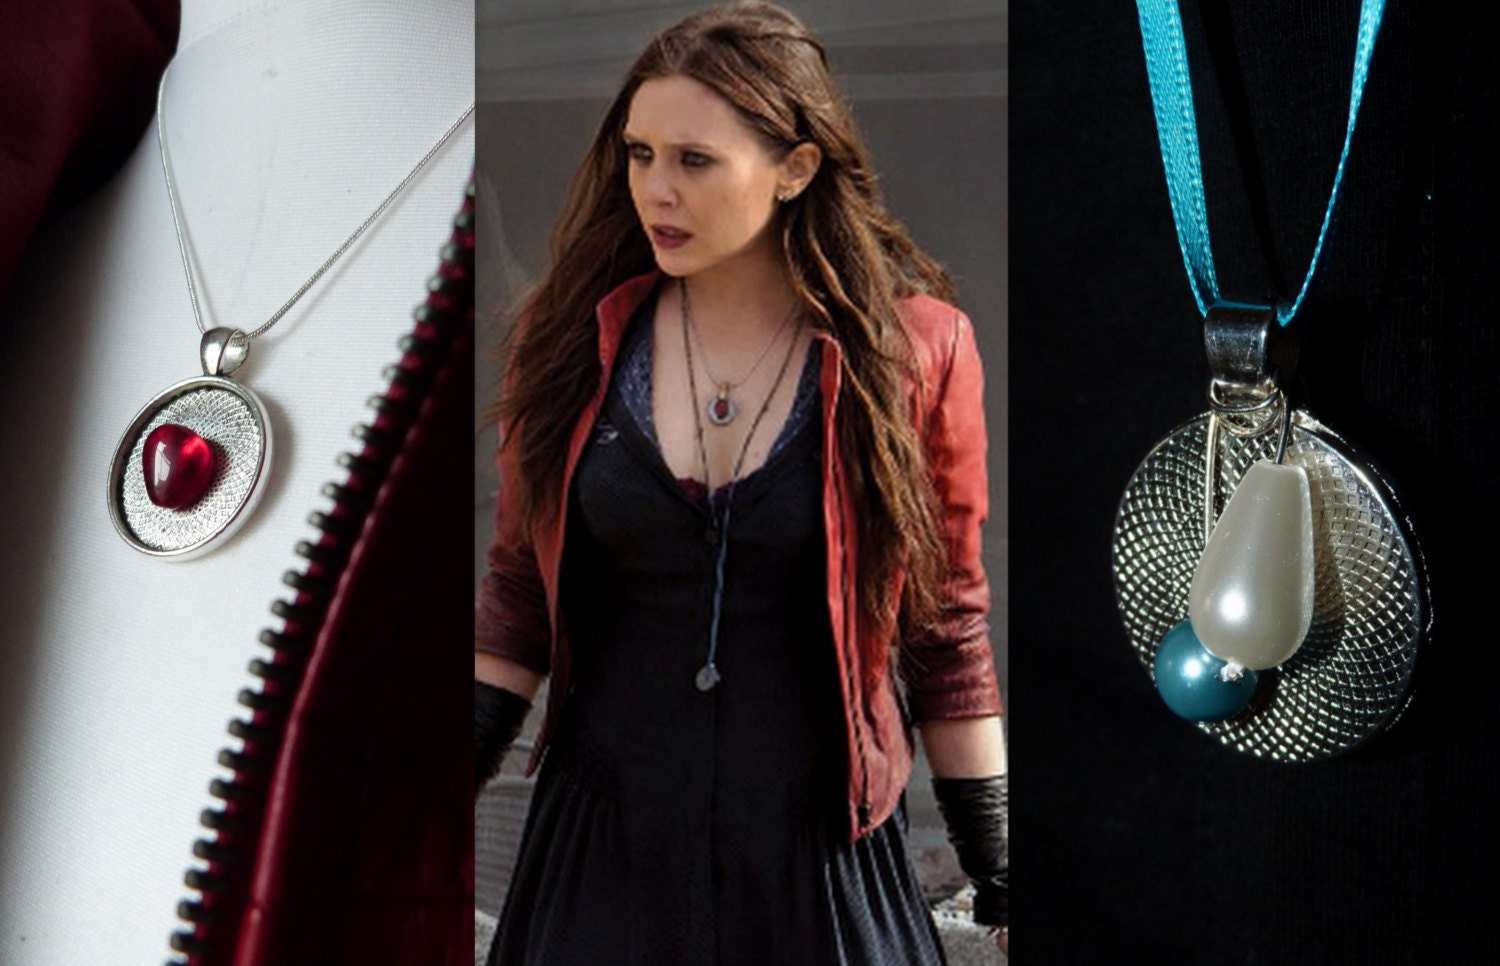 Wanda Maximoff/Scarlet Witch Cosplay Necklace Avengers Age of